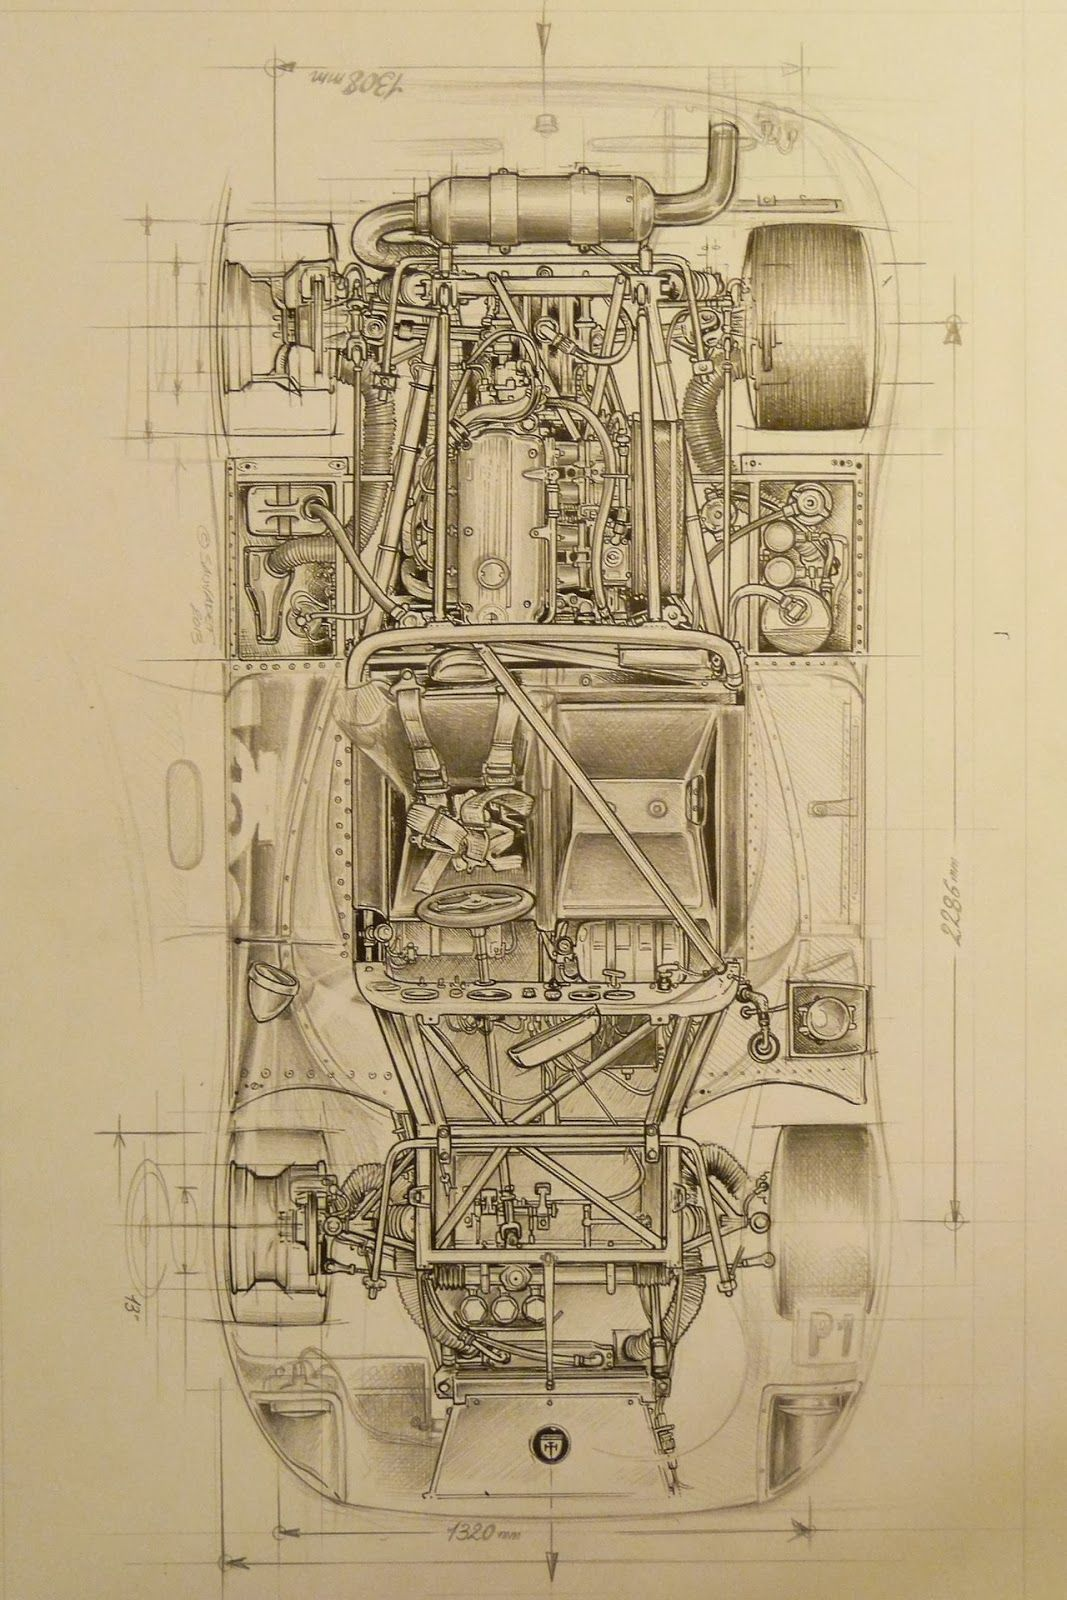 Sketch By Sebastien Sauvadet Art Pinterest Sketches Cars And Vehicle Cutaway Wiring Diagram